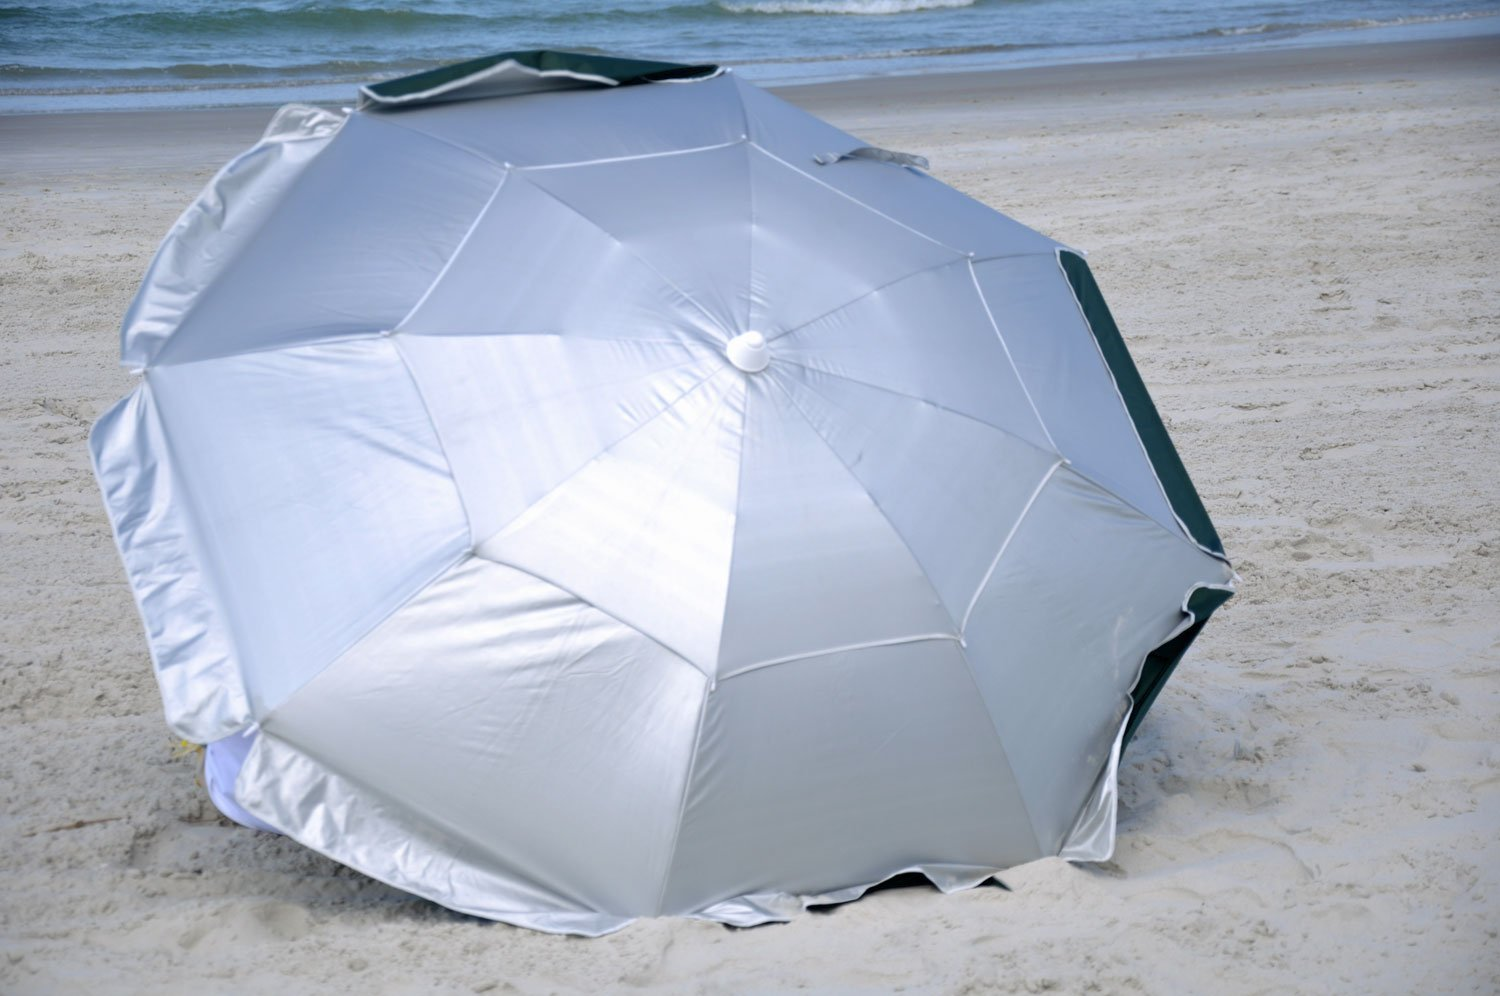 bf062a1c2207 Beach Umbrella Review: May 2013